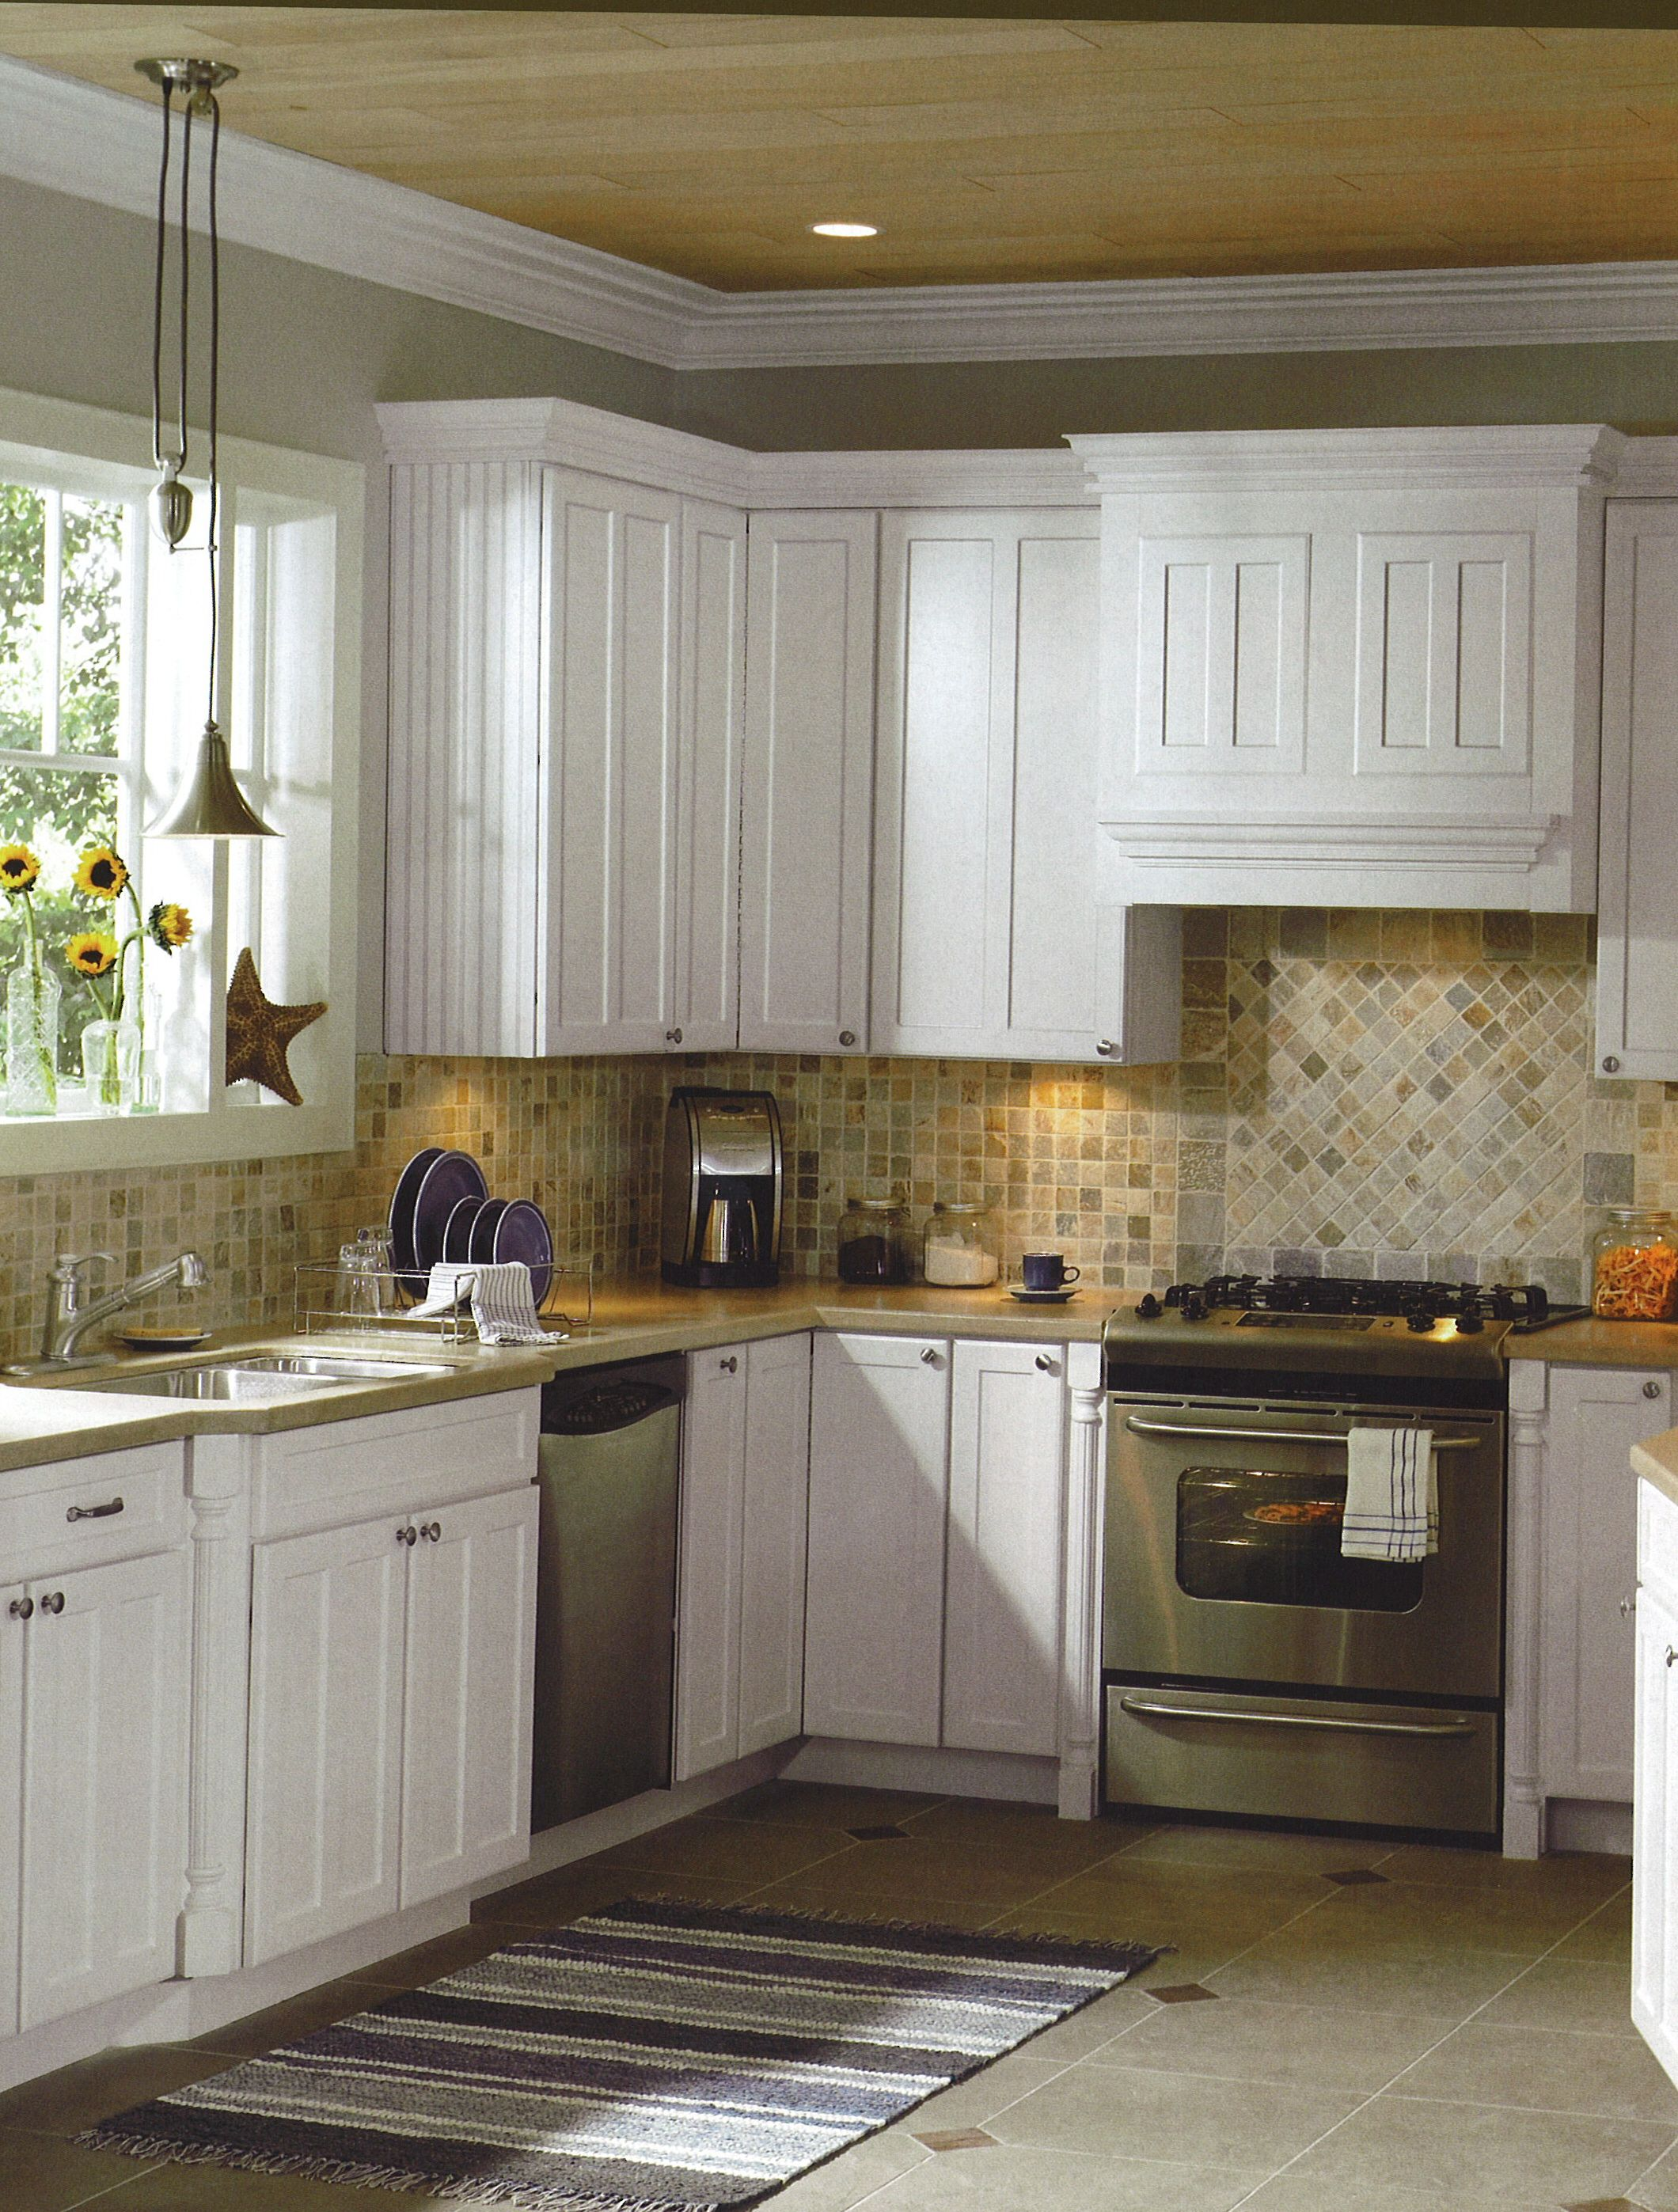 Uncategorized White Kitchen Designs best floor and counter color for white kitchen cabinets country design idea our